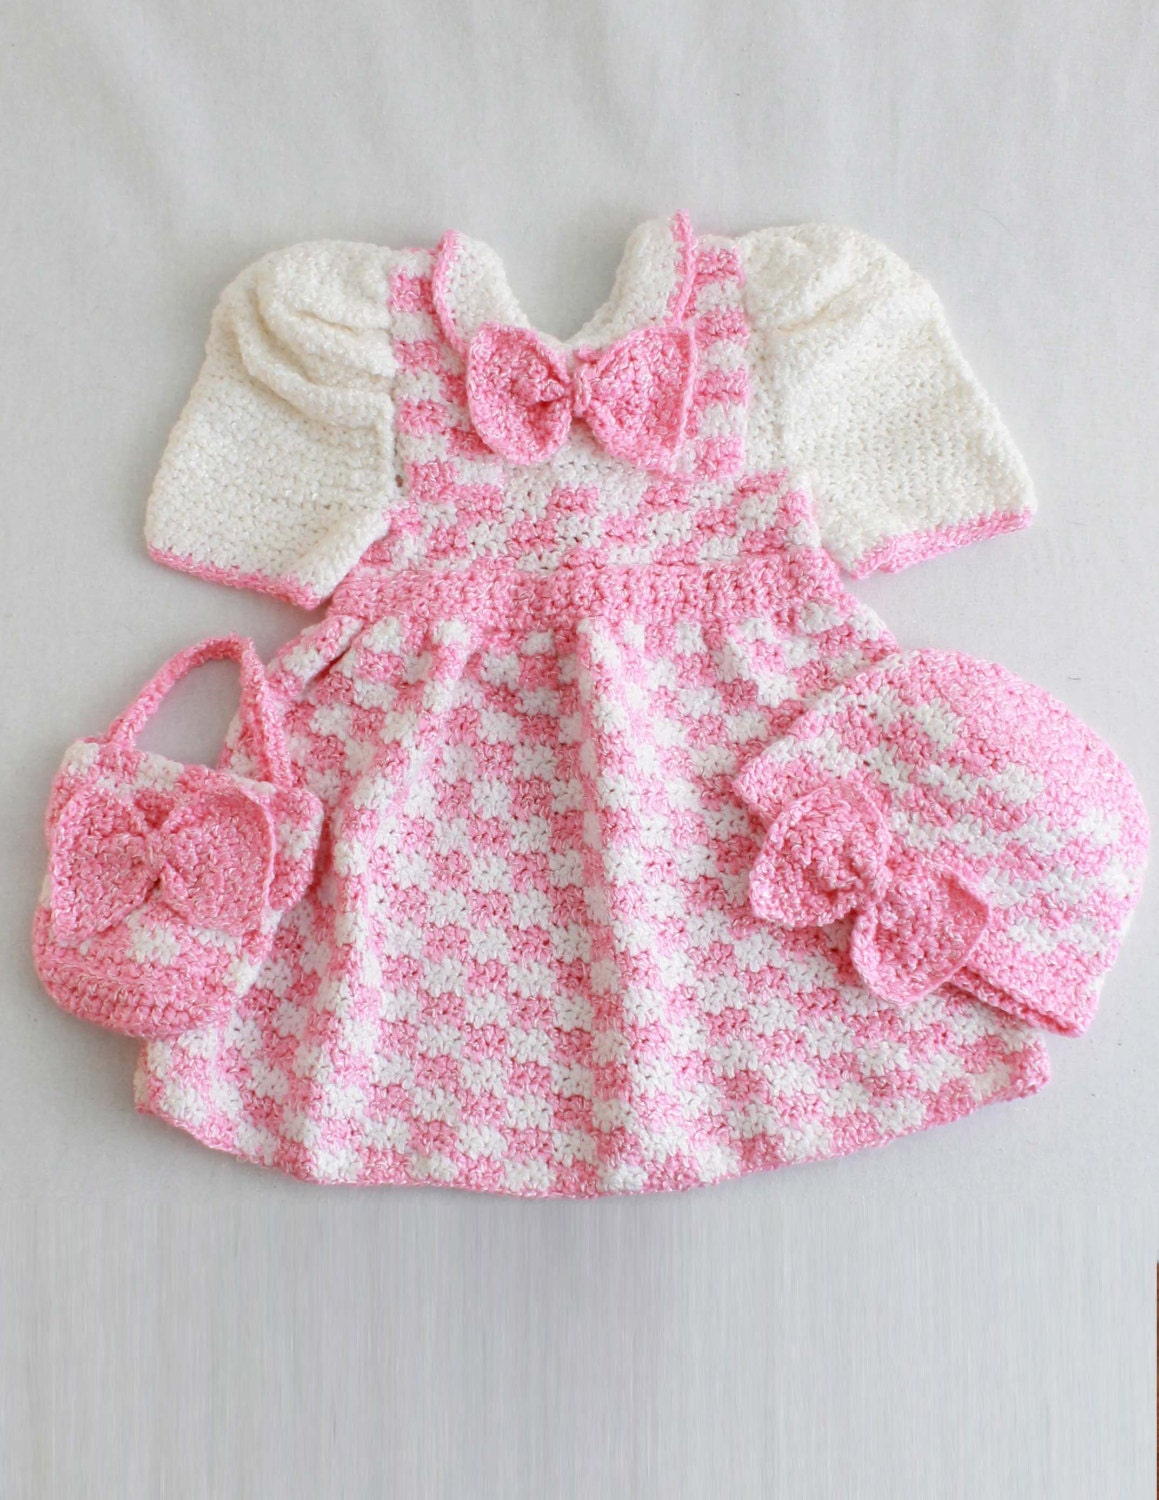 Free Crochet Patterns For Baby Girl Clothes : Madeline Pink Check Outfit Crochet Pattern PDF